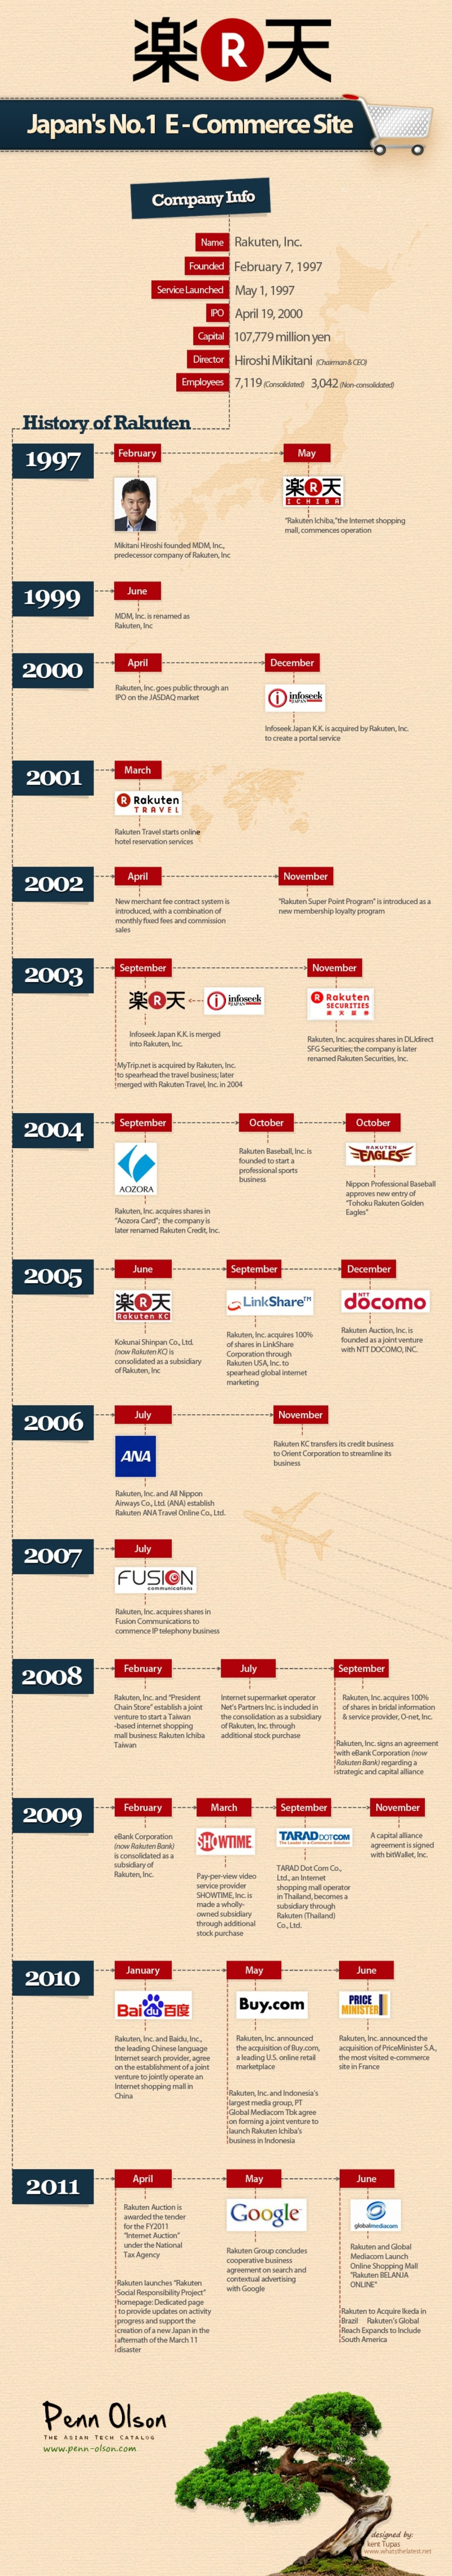 The History of Rakuten, Japan's Largest E-Commerce Site